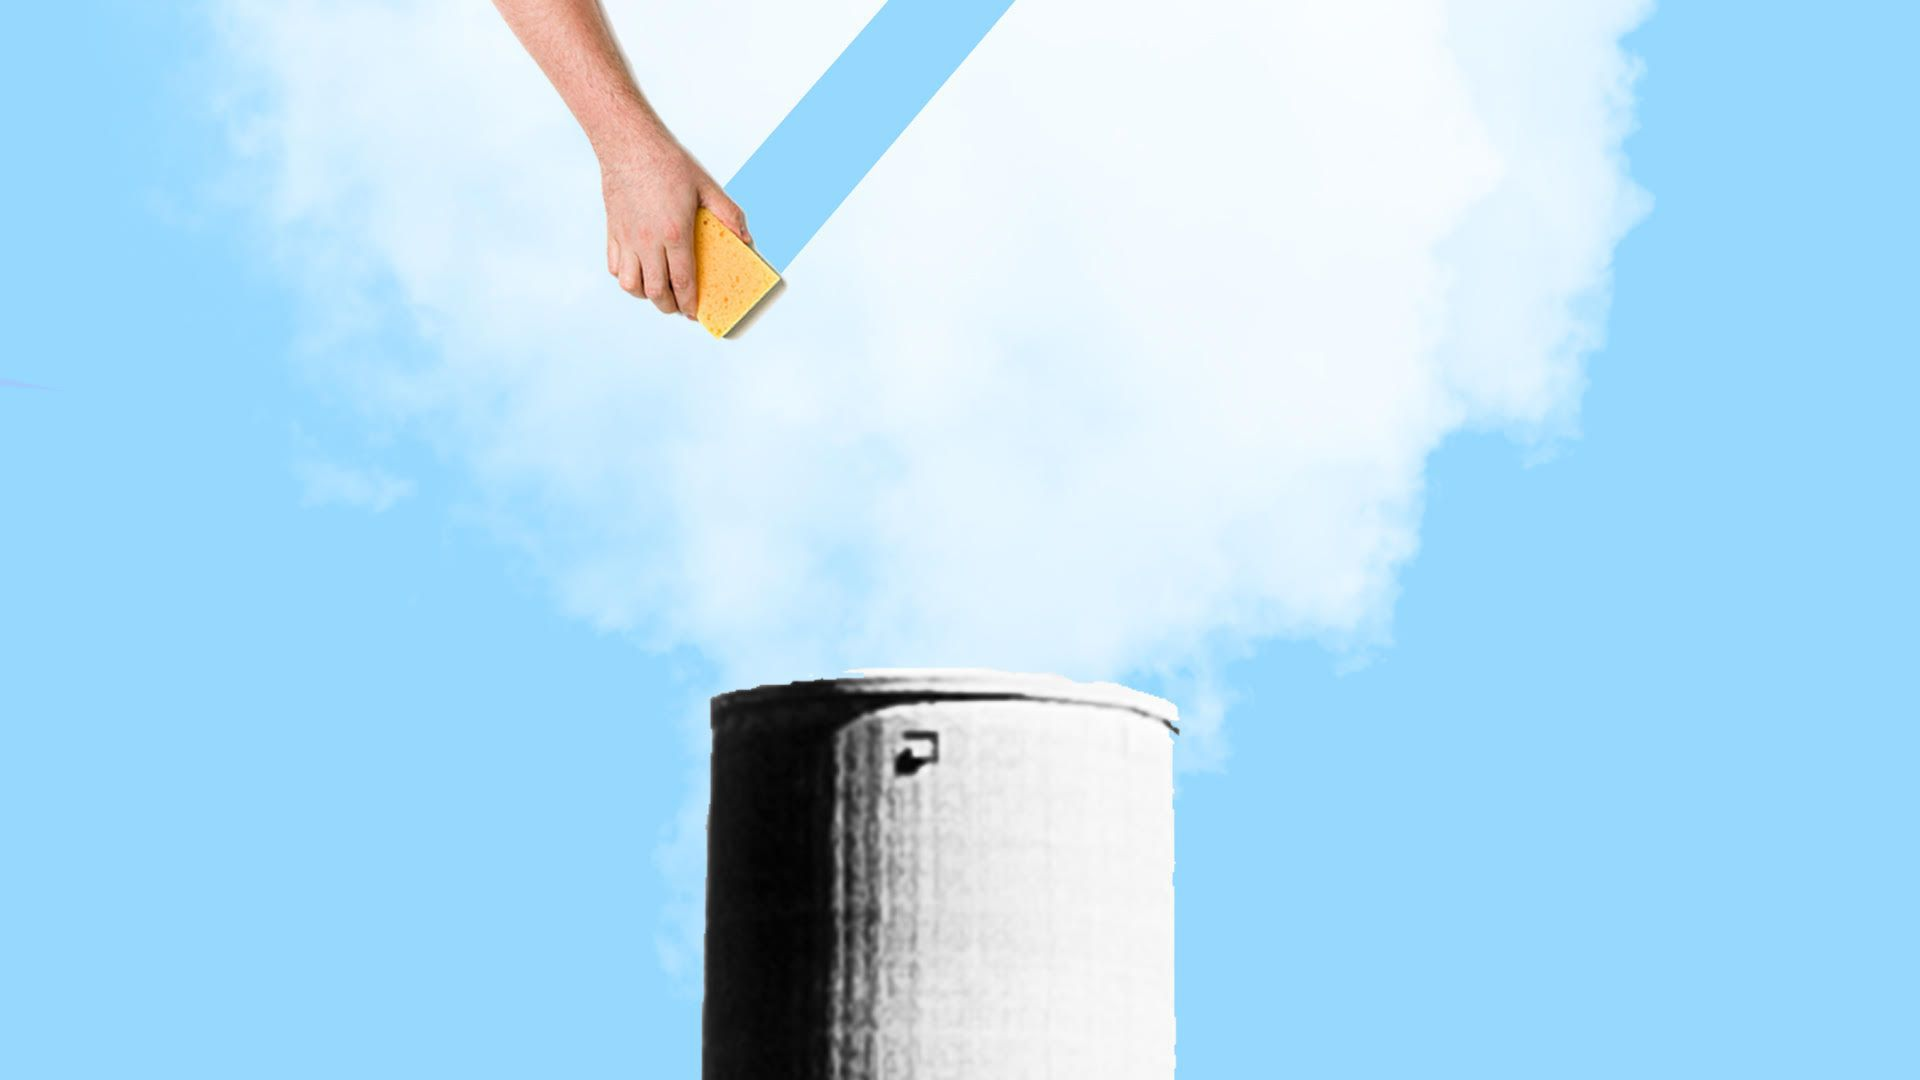 Illustration of a sponge cleaning emissions from a smokestack